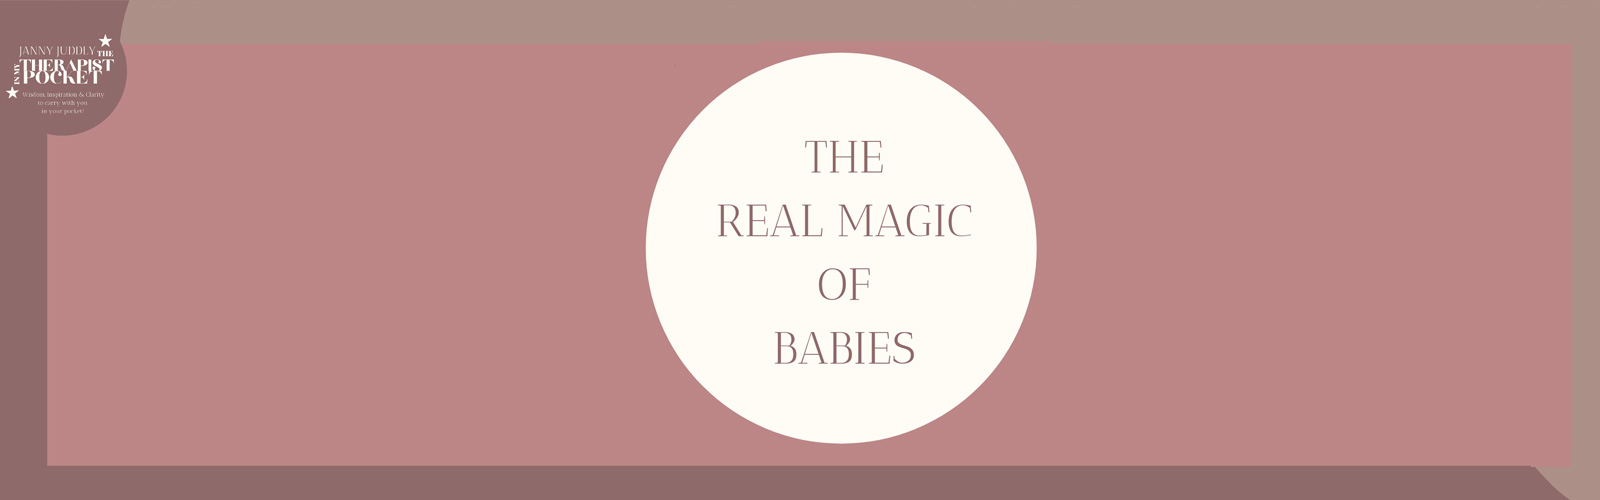 THE REAL MAGIC OF BABIES